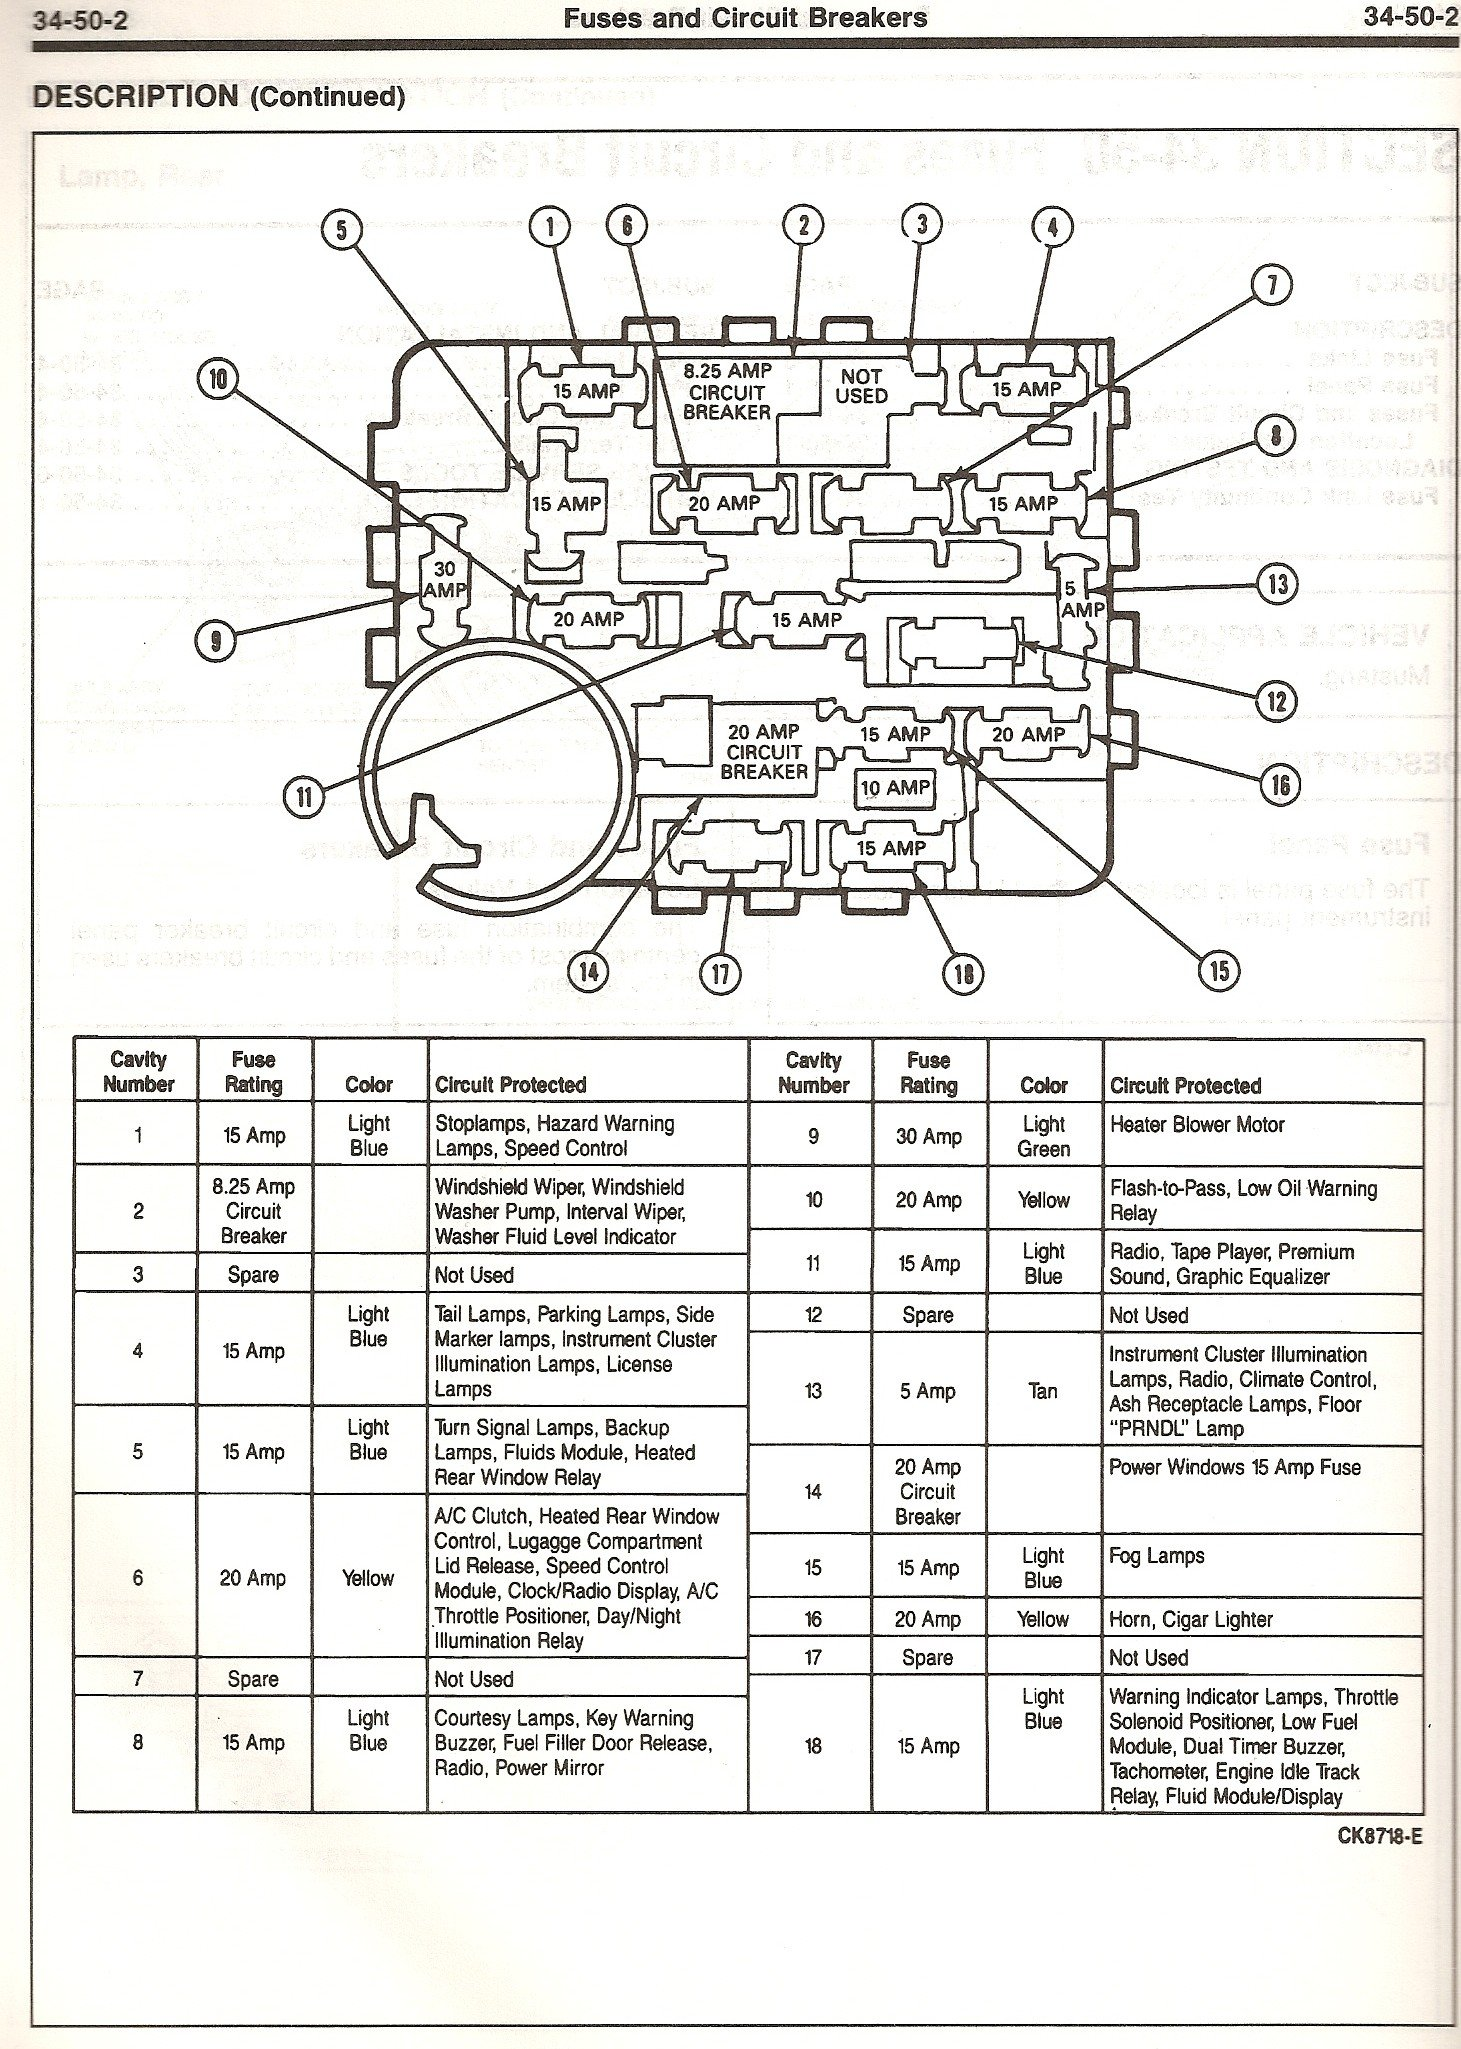 Fuse Box On 98 Mustang 22 Wiring Diagram Images Diagrams 2 3 Litre Ranger Engine 30633d1185070172 1990 Missing Scan7 I Need A Panel 99 04gt Mustangforums